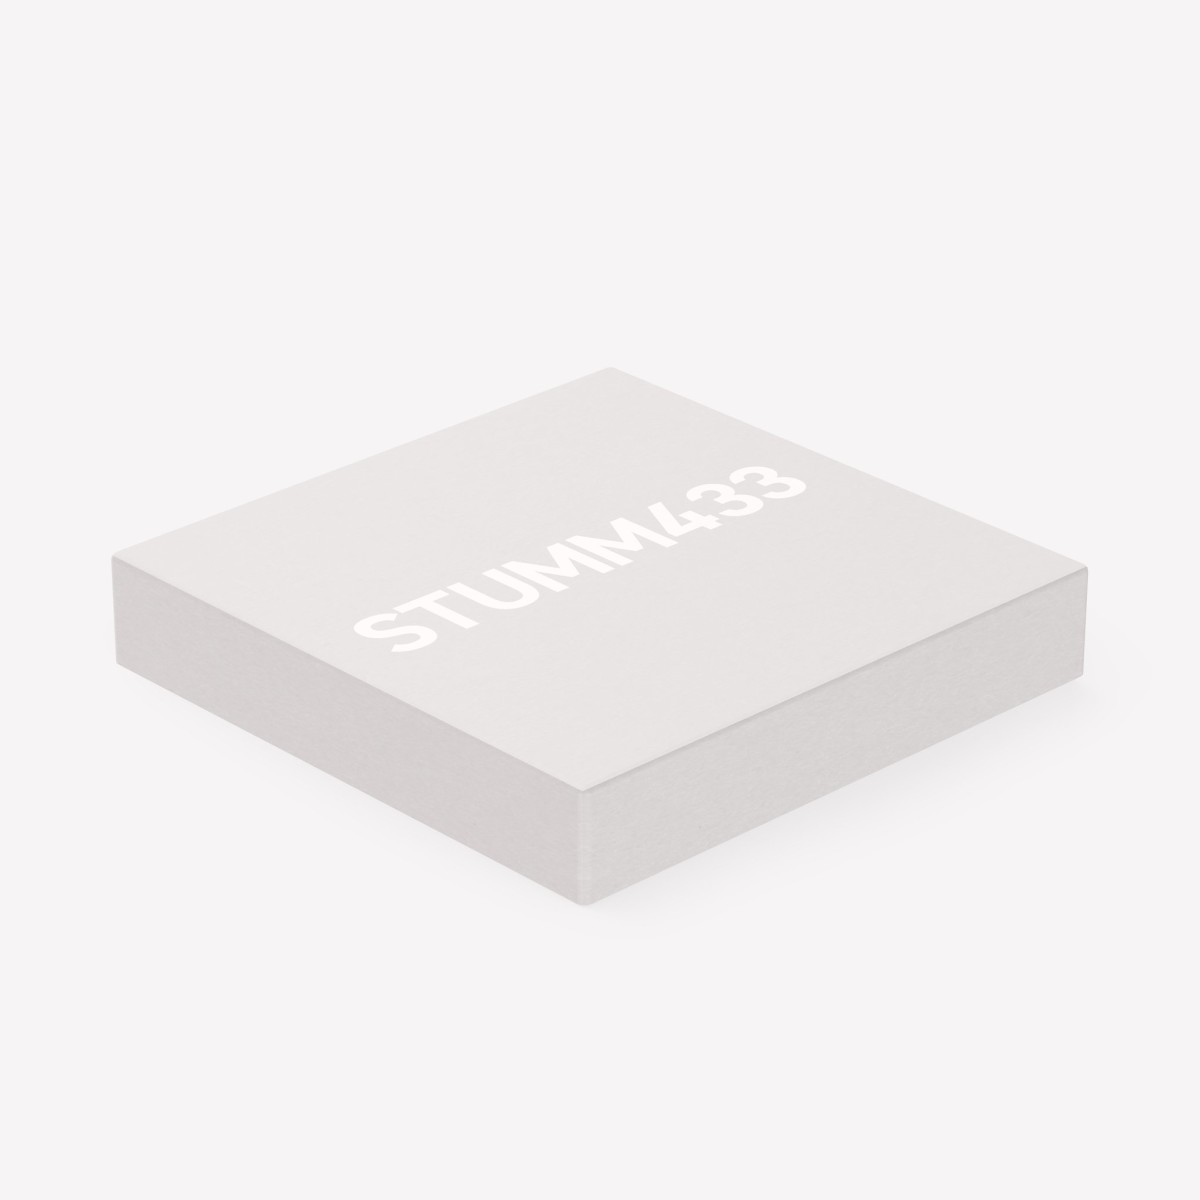 STUMM433 box set